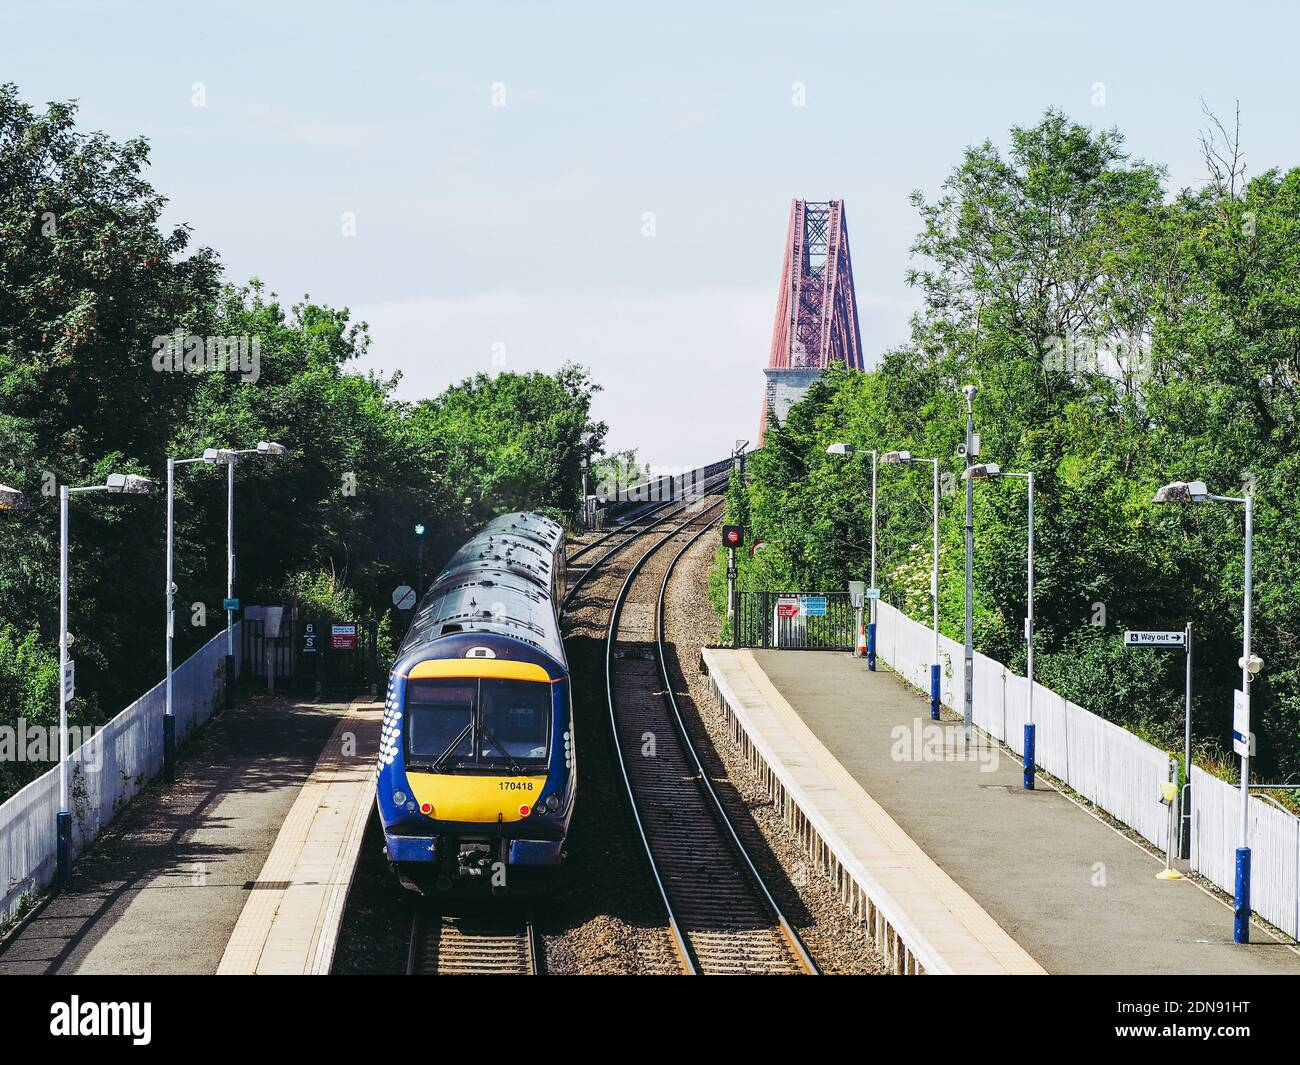 EDINBURGH, UK - CIRCA JUNE 2018: Dalmeny railway station for the Forth bridge Stock Photo